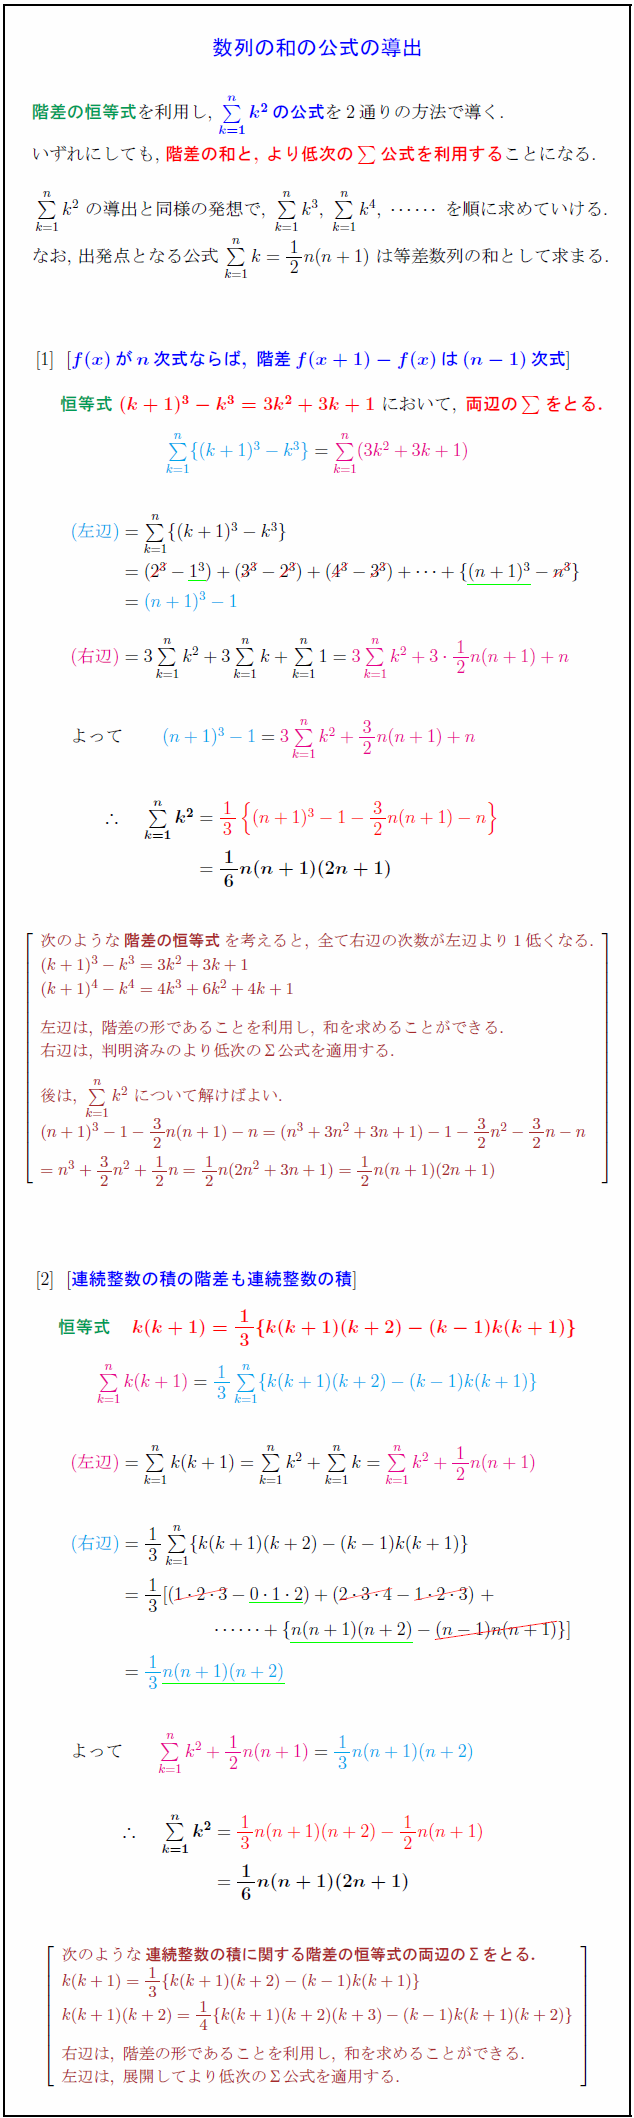 sigma-formula-derivation